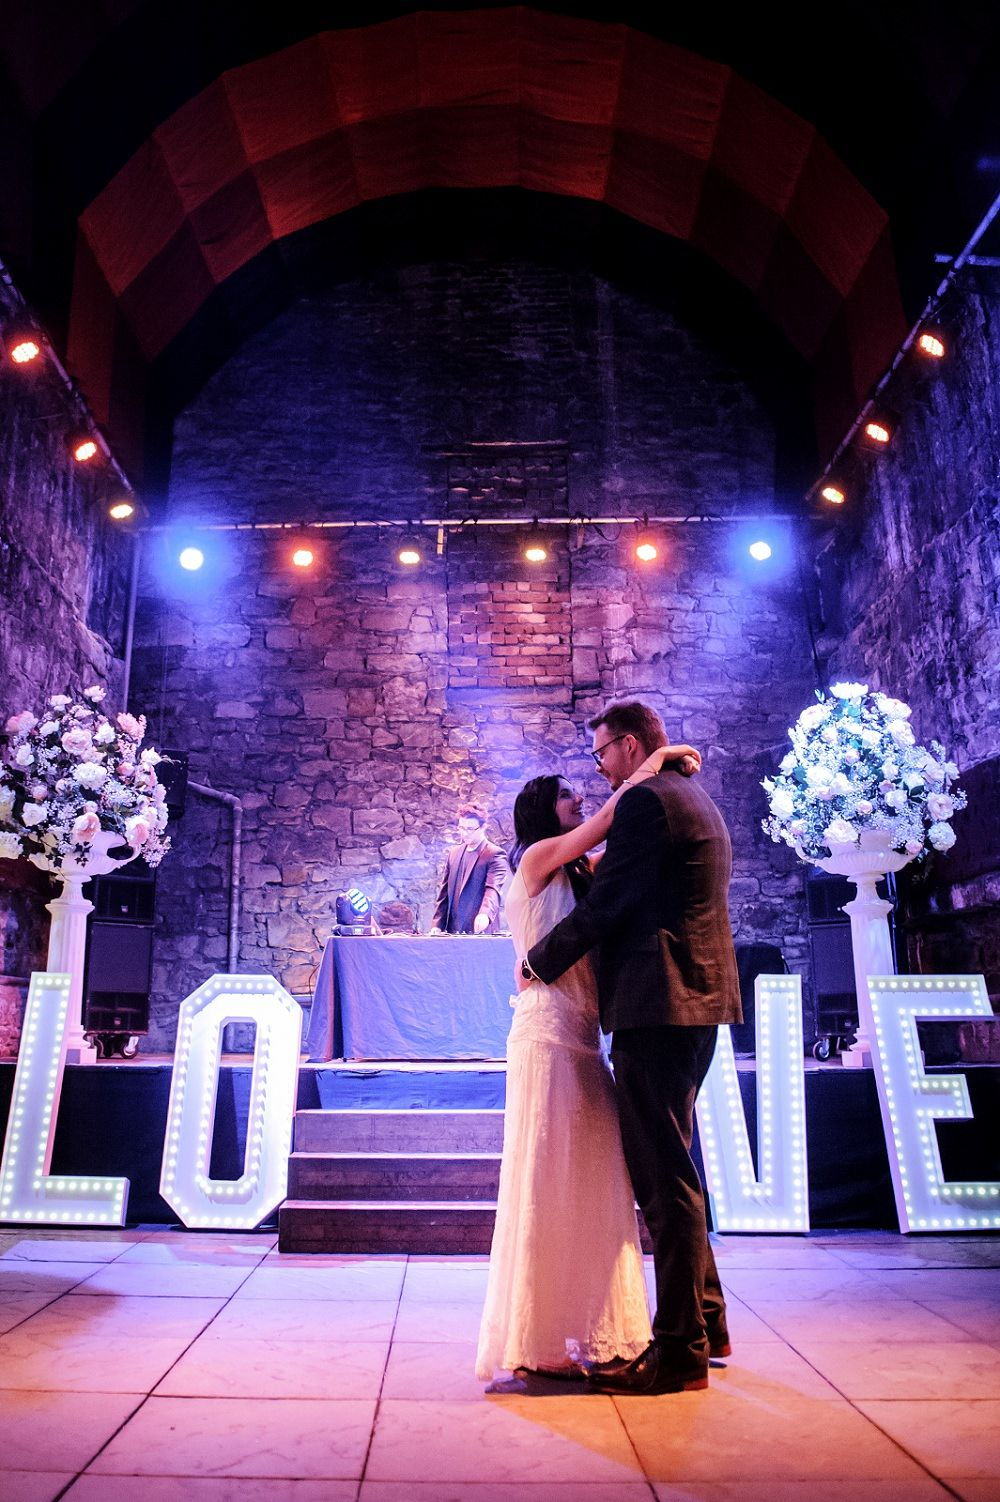 Unusual Wedding Venue in Edinburgh | Unusual Venues Edinburgh ...